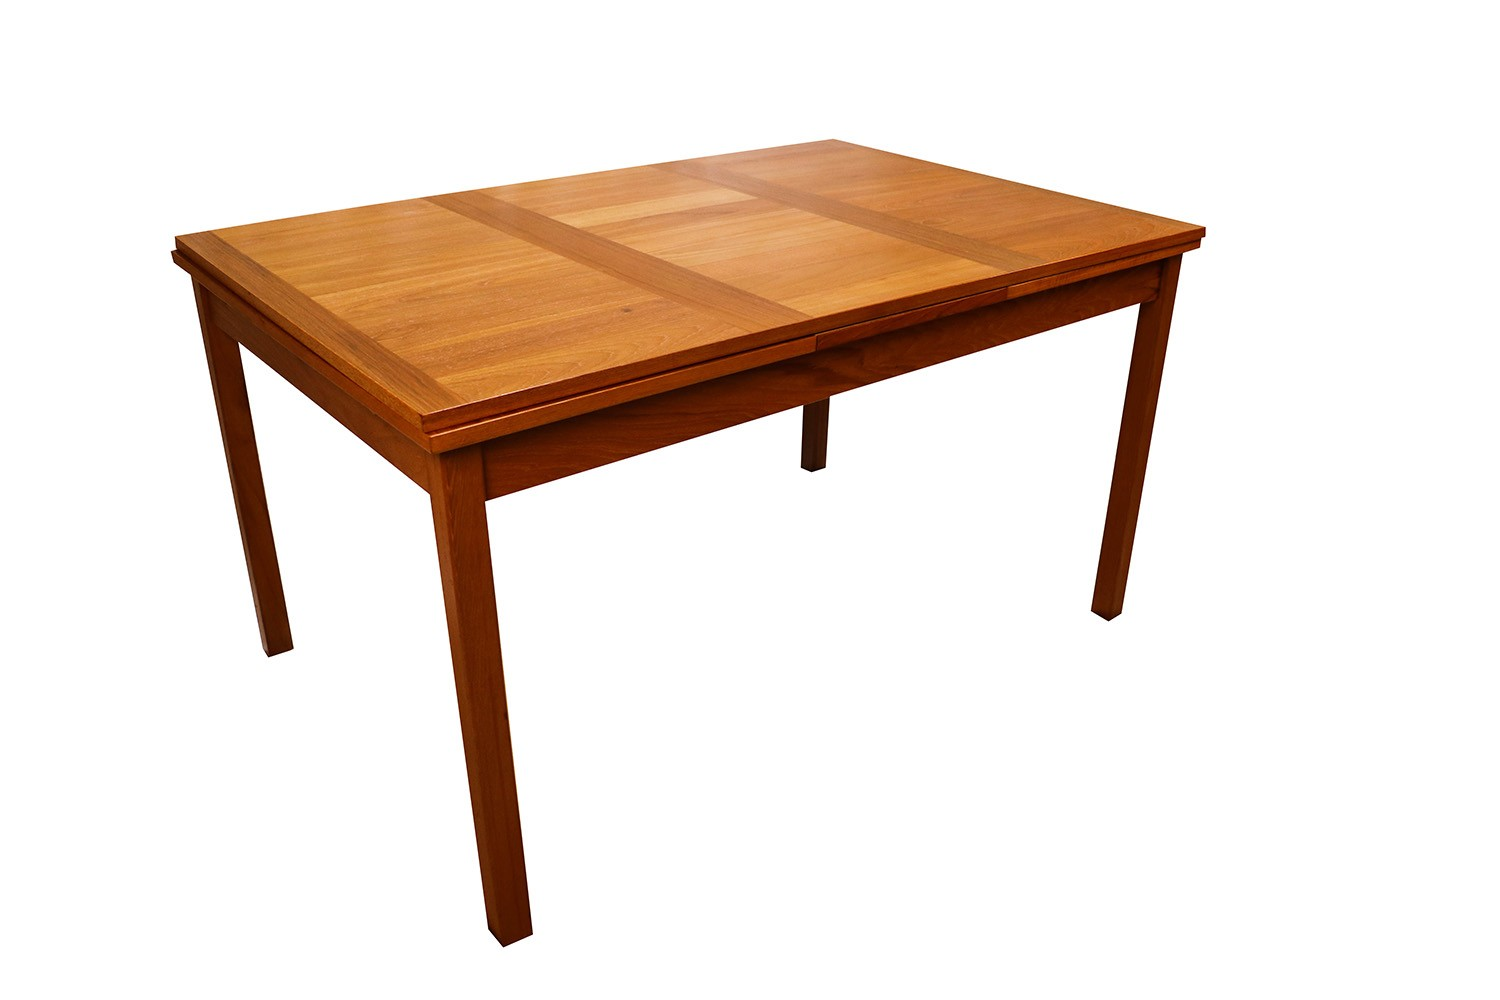 Danish modern teak extendable dining table vejle stole for Extendable dining table